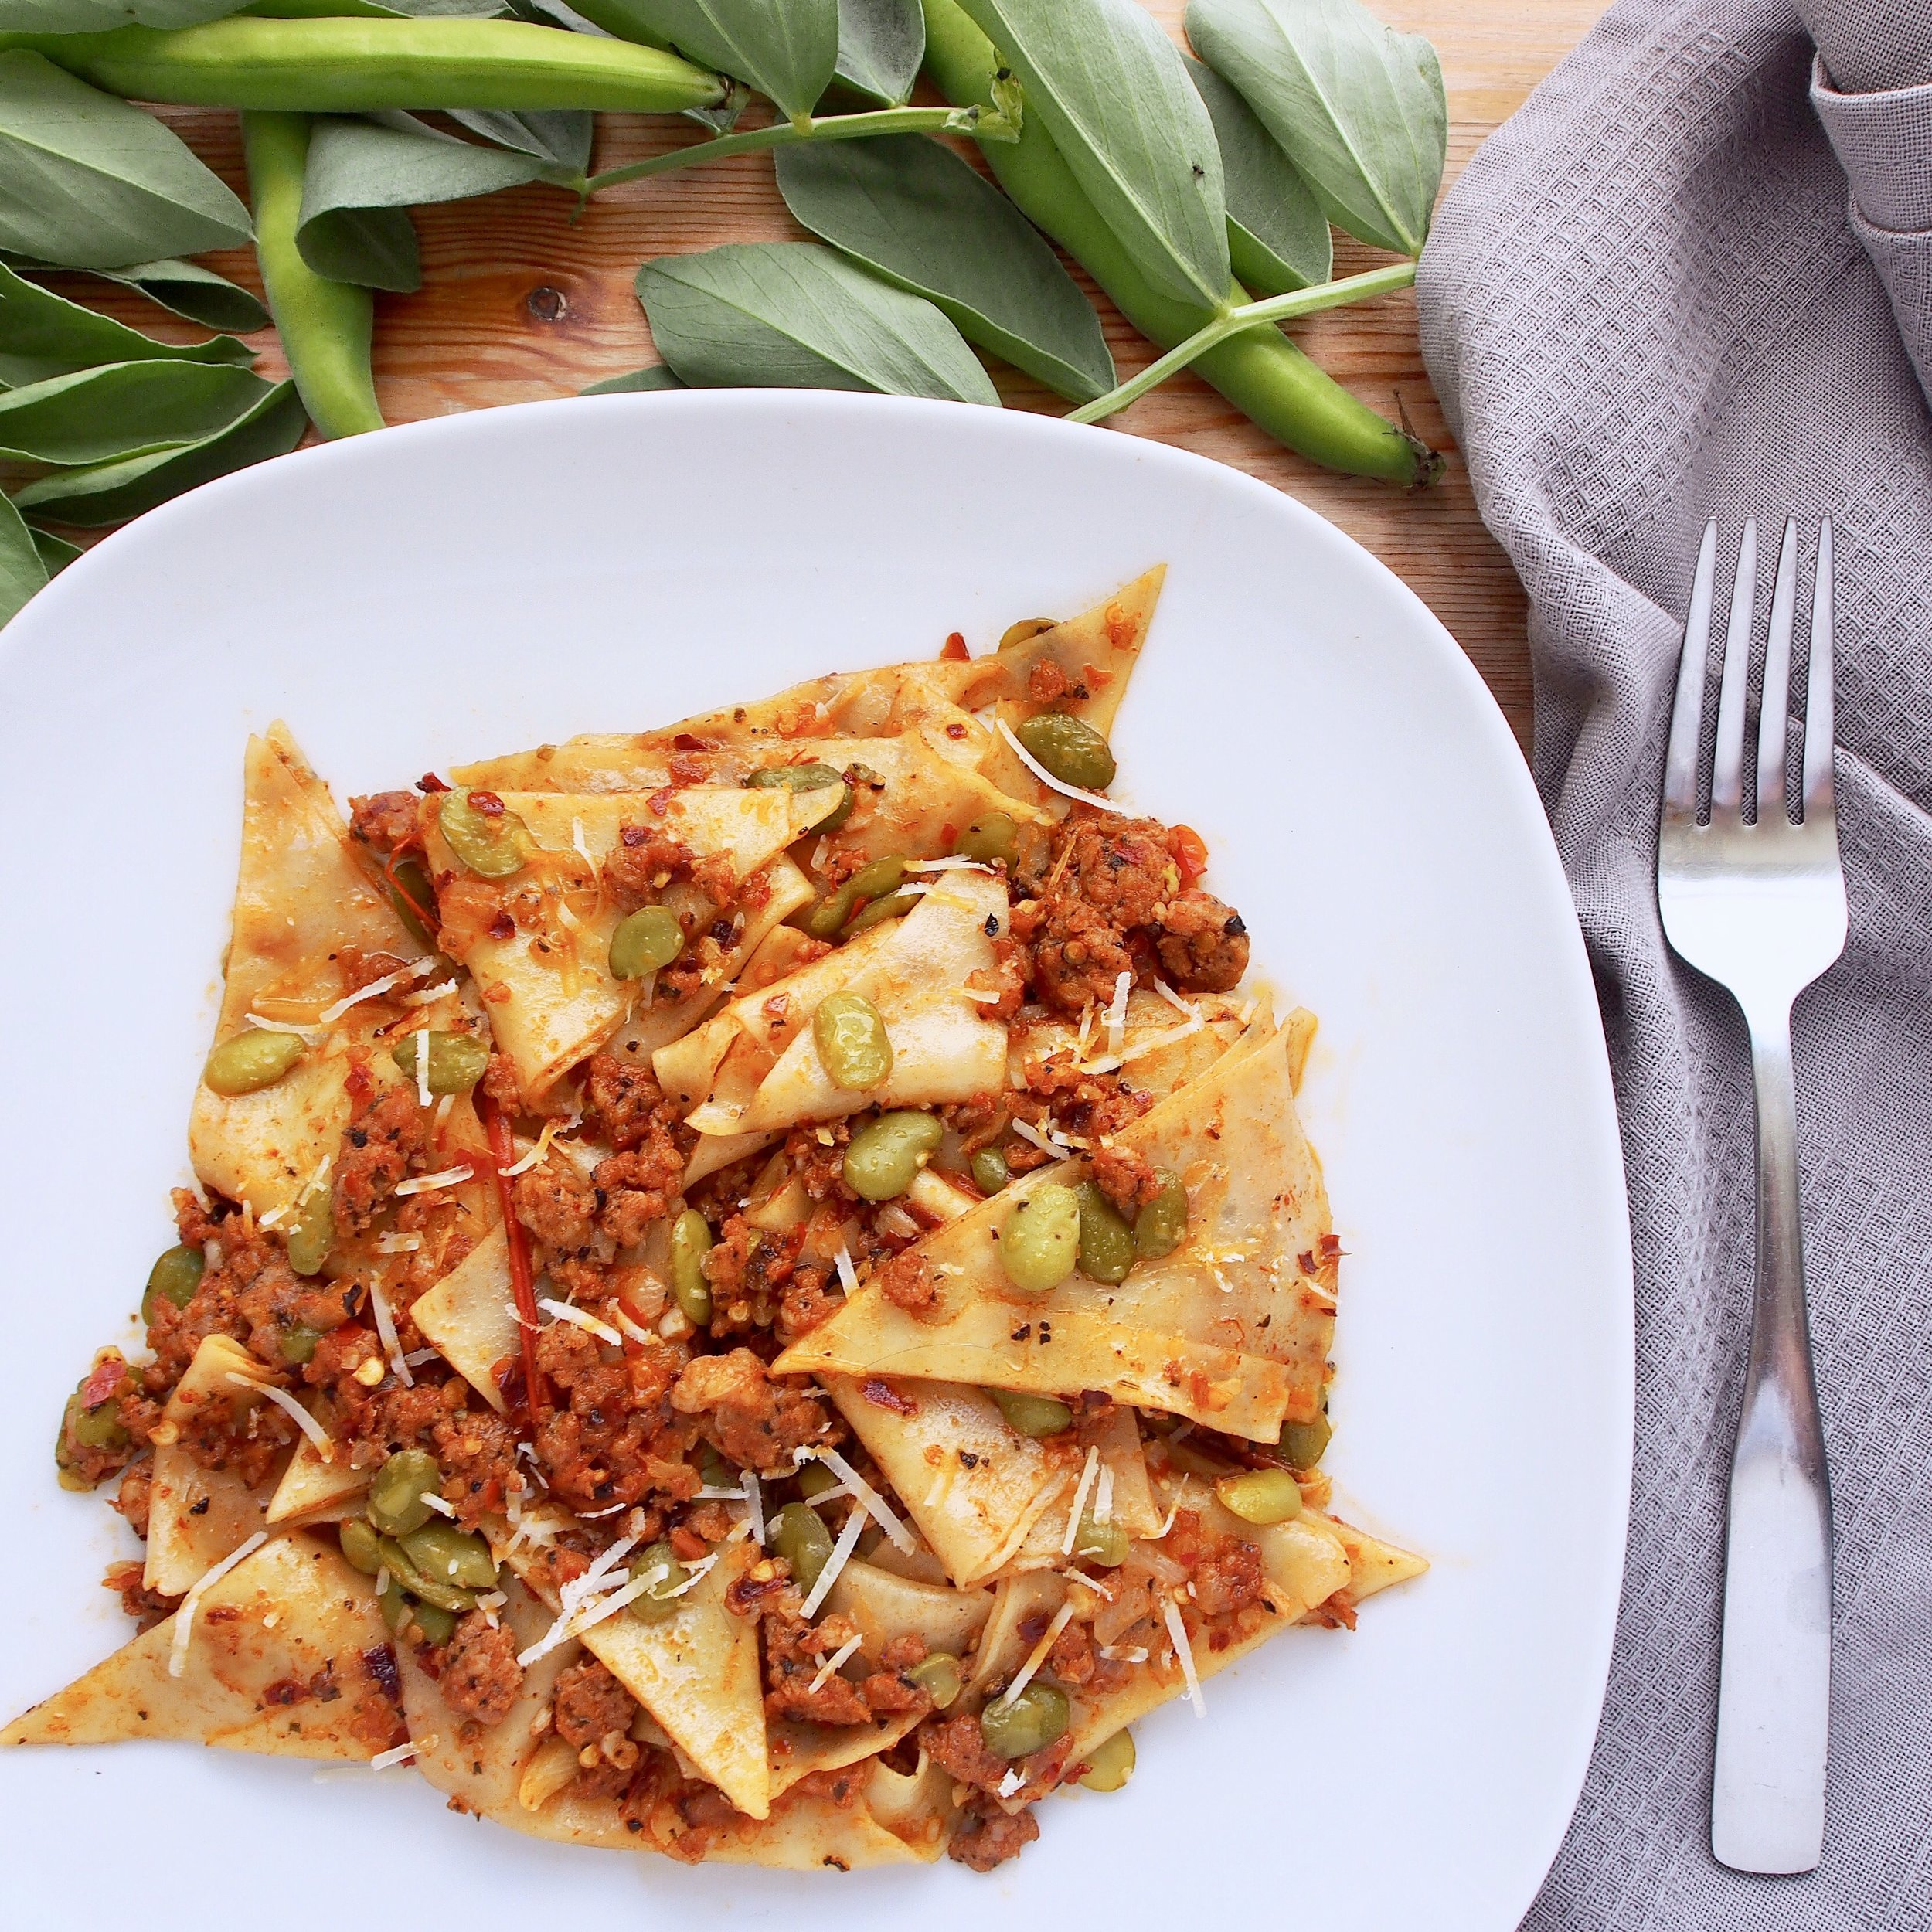 This fava bean pasta is cooked with fresh tomatoes, sausage, and fresh pasta sheets! Fava beans are also known as broad beans and are very tasty in pasta!